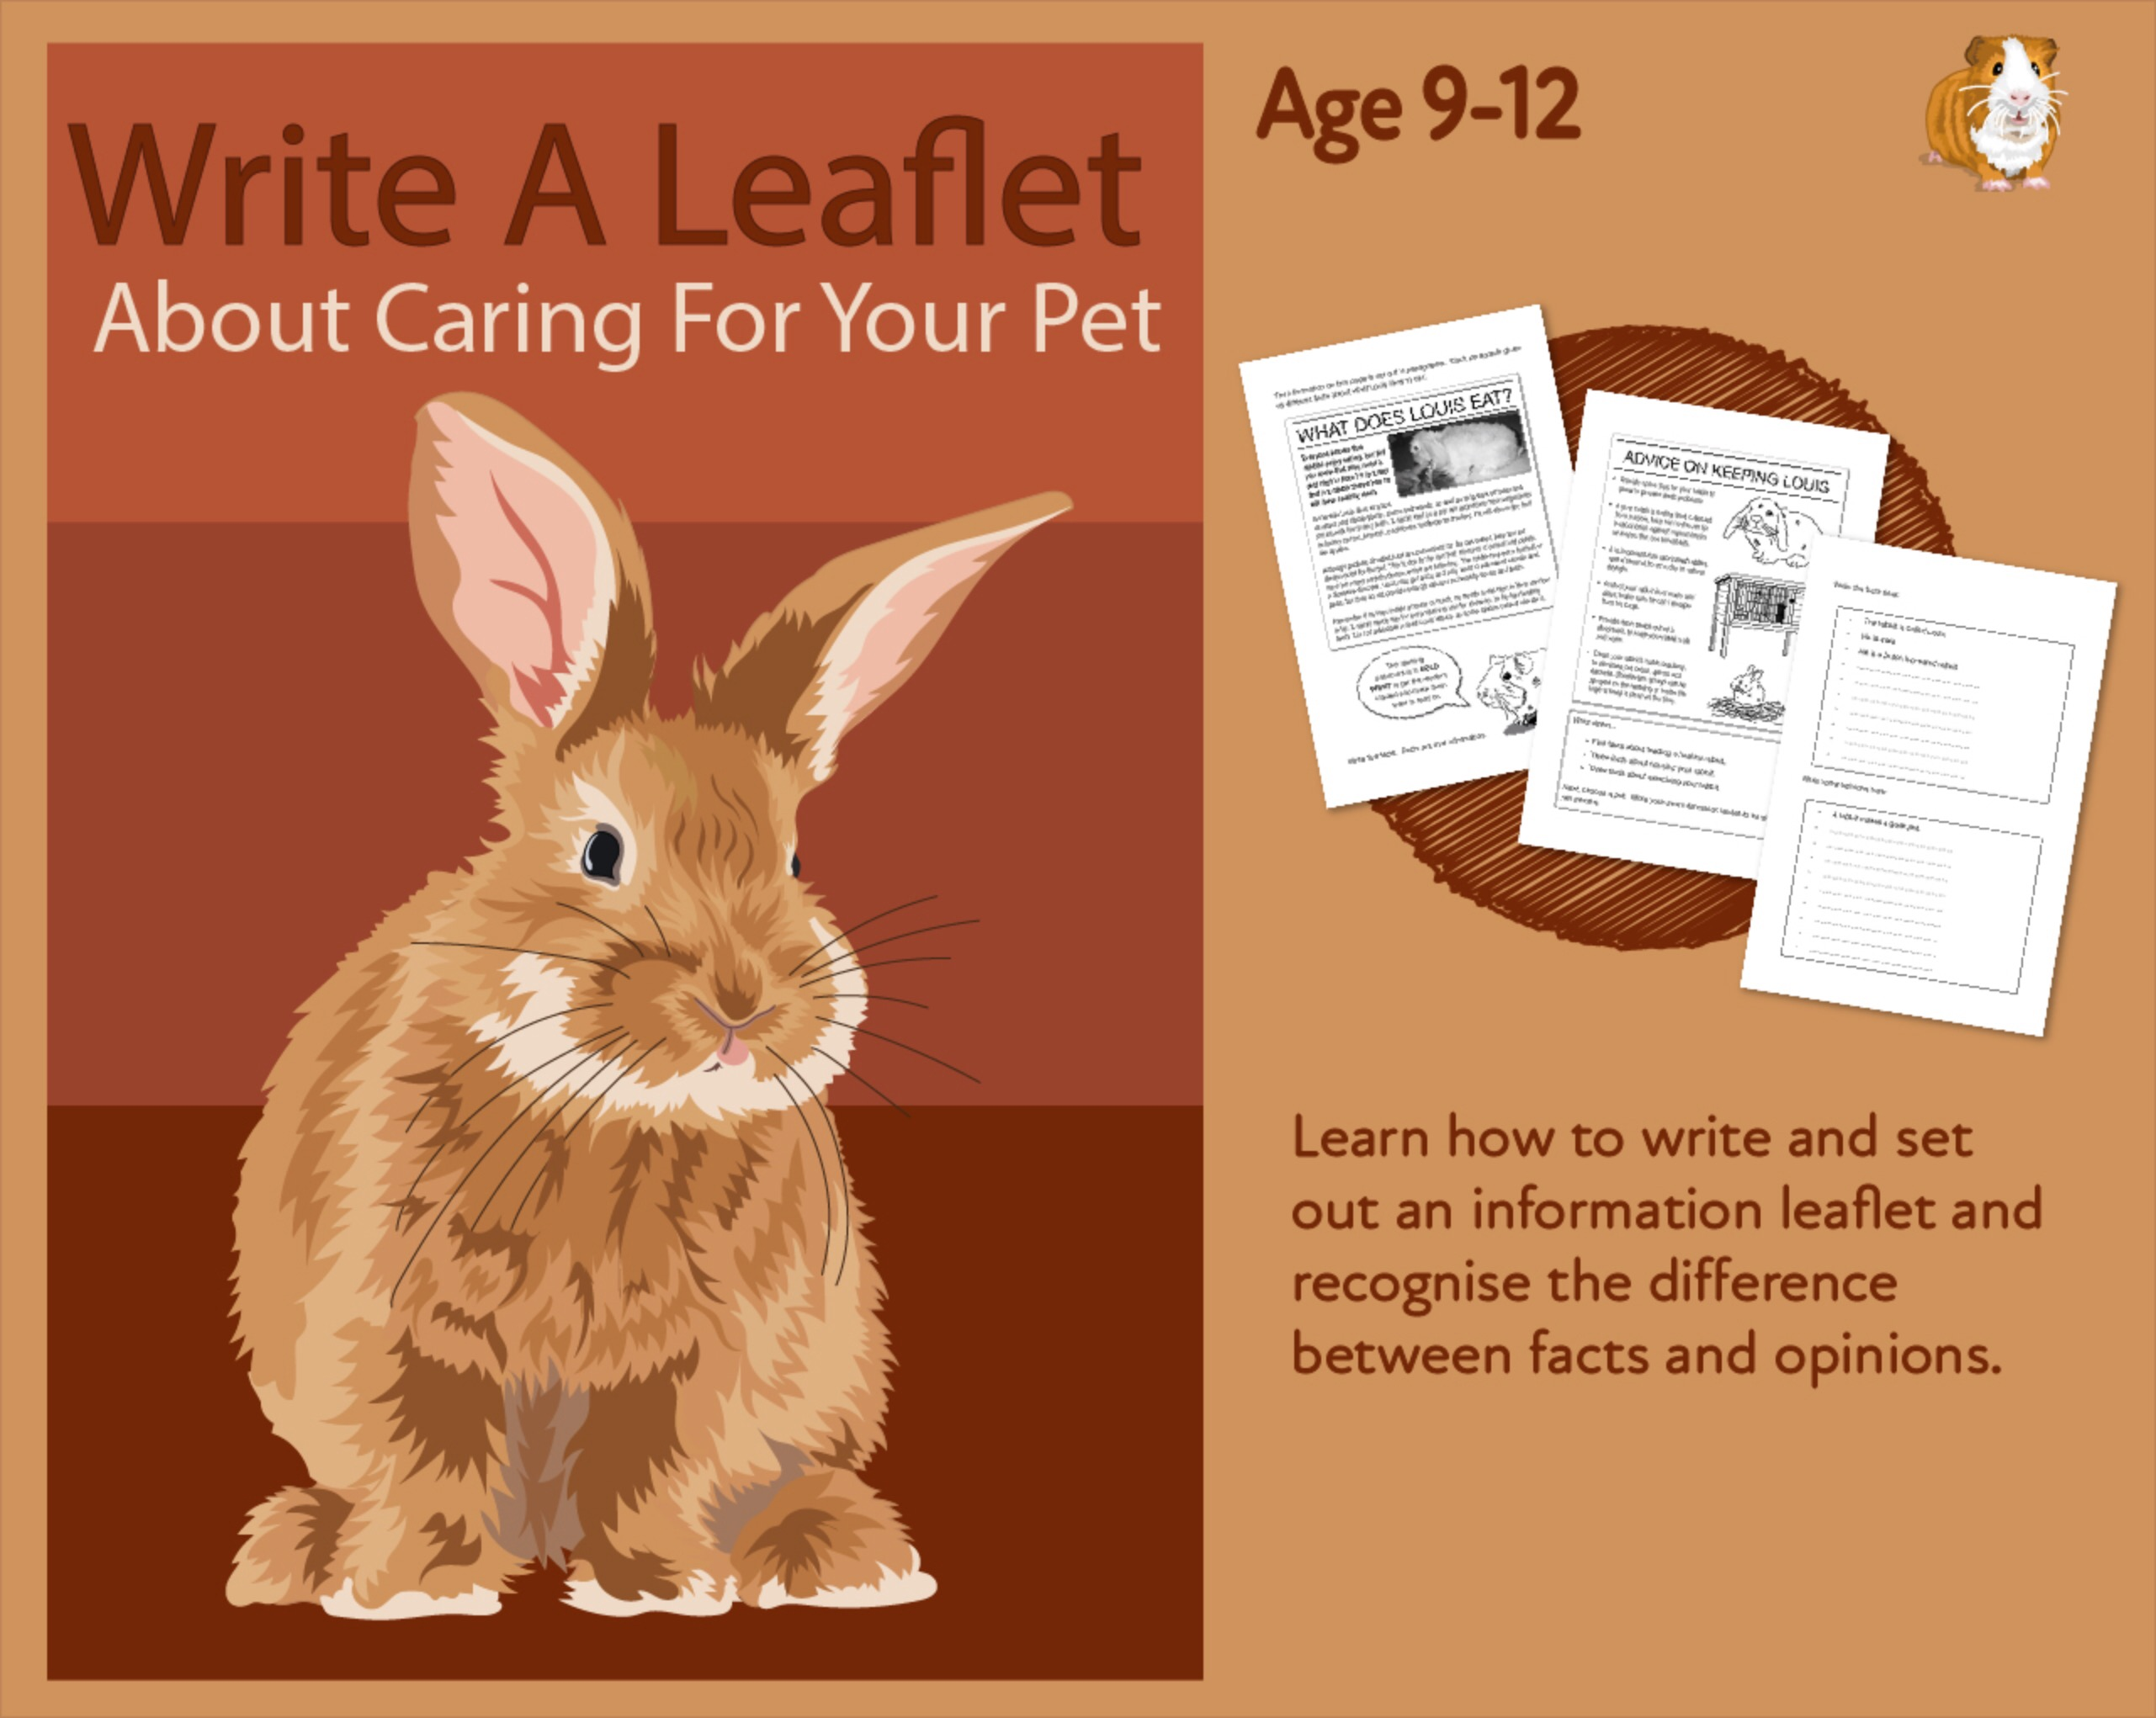 Practise Writing A Leaflet On Caring For Your Pet (9-14 years)